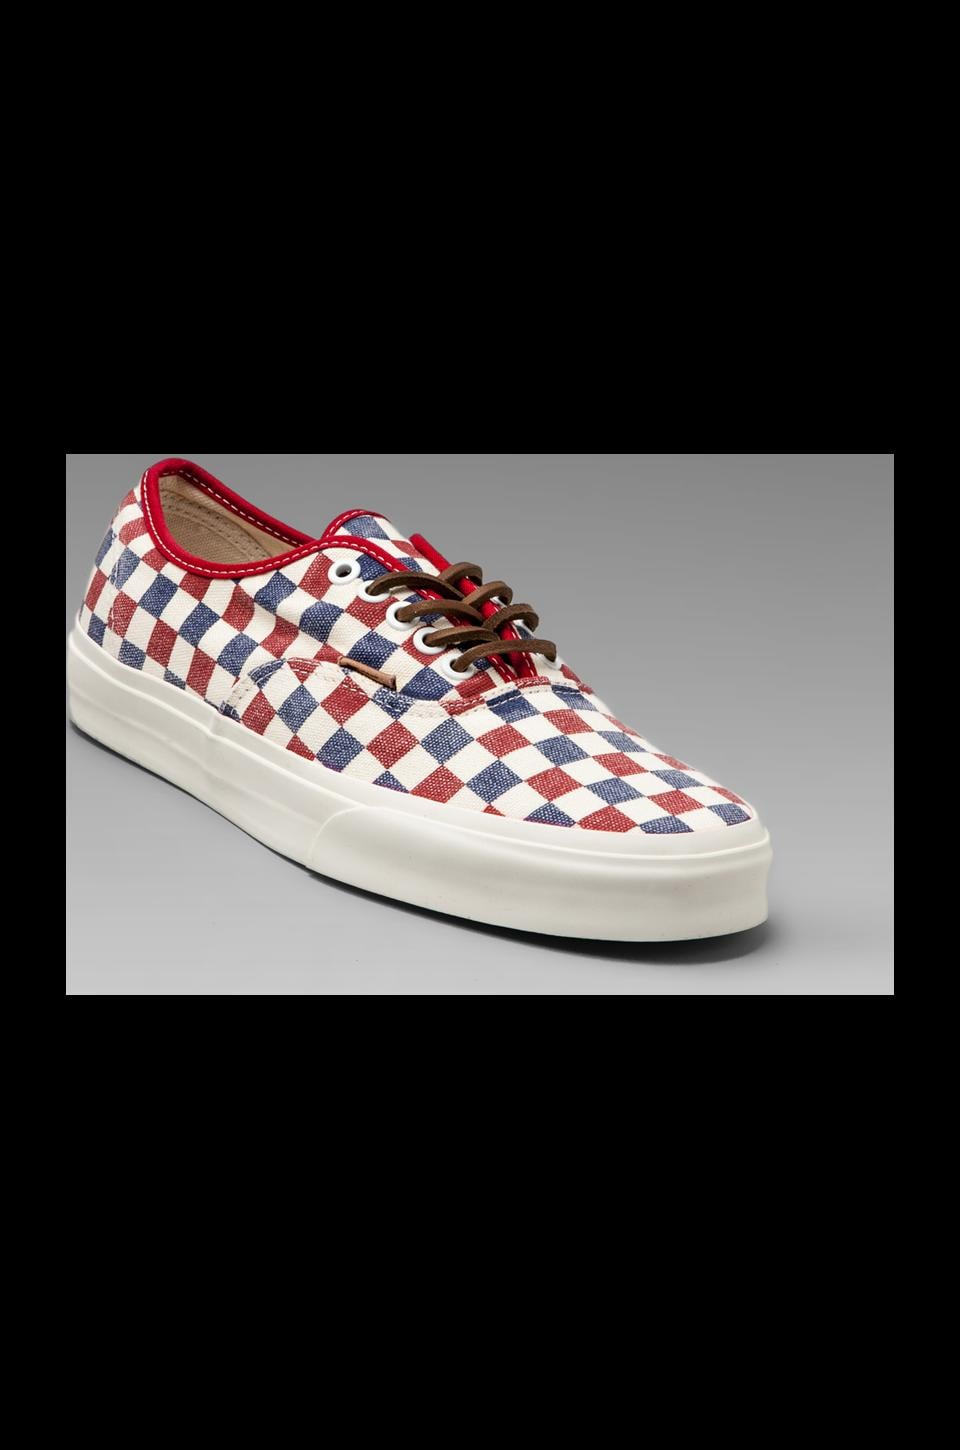 Vans California Authentic in Checker True Blue/Red